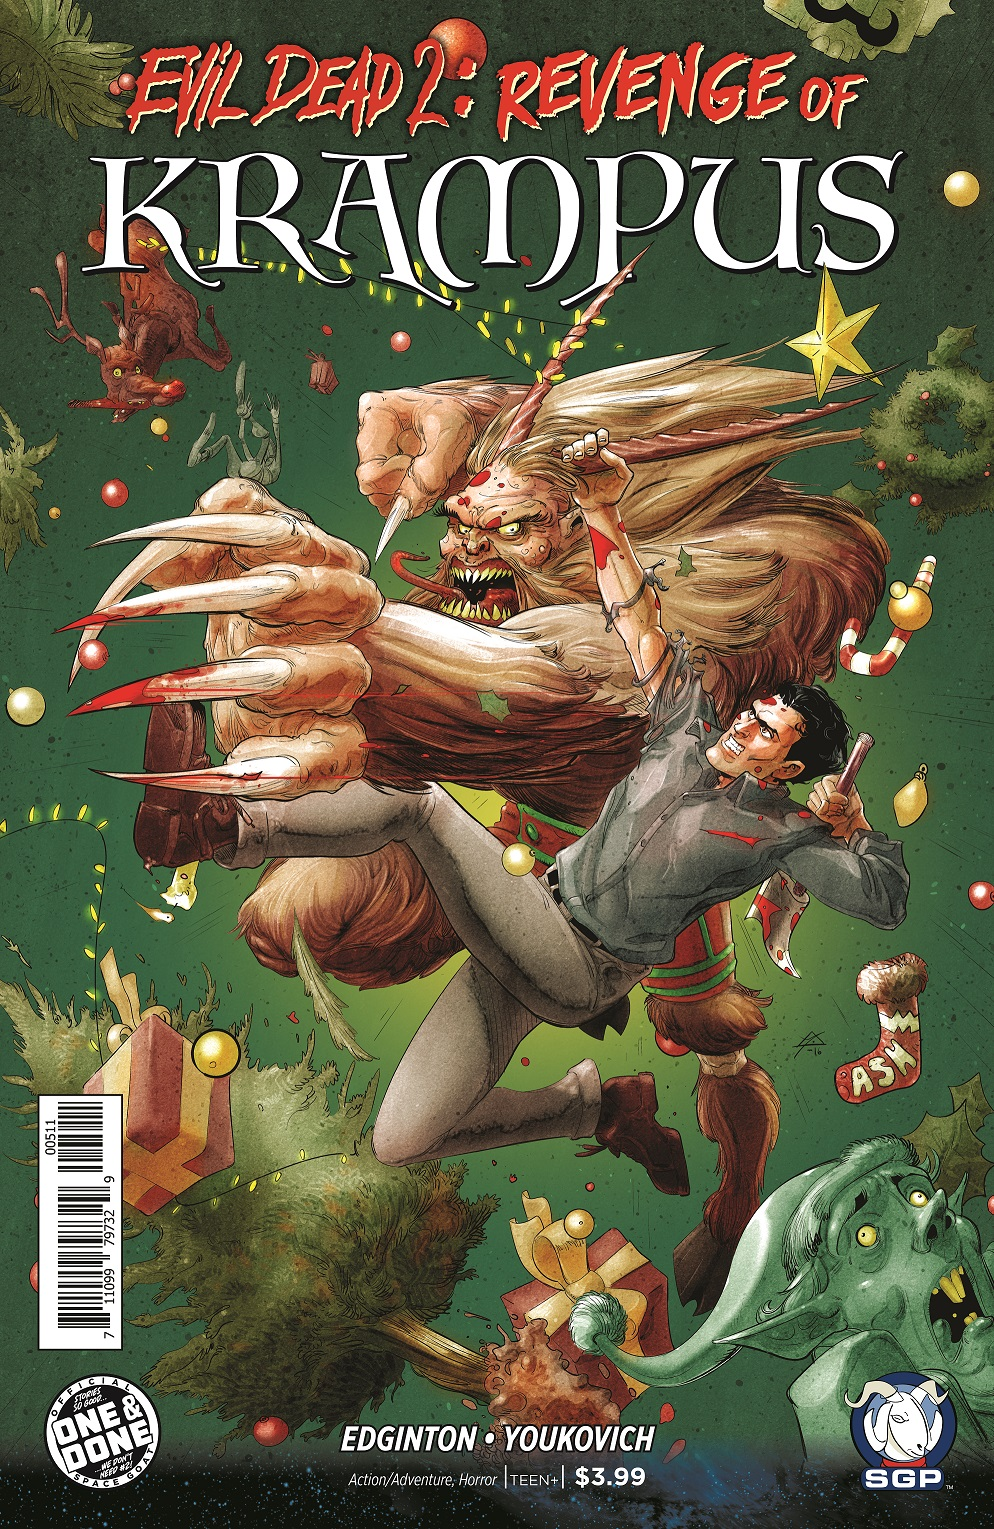 Evil Dead 2: Revenge of Krampus Comic Book Cover